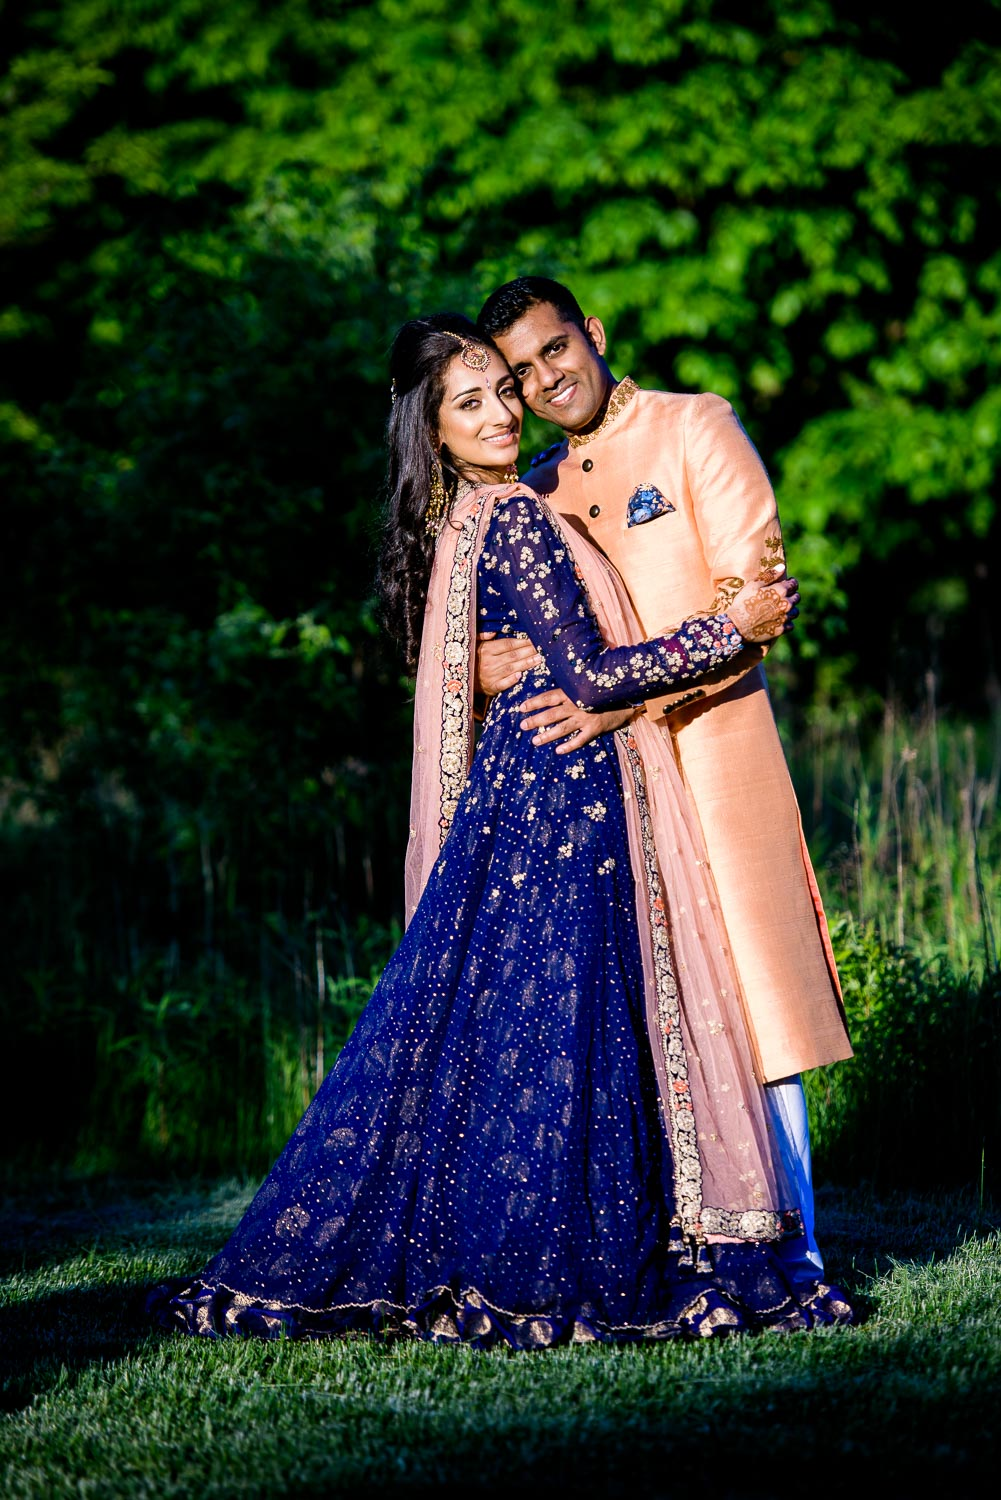 Bride and groom during their Indian wedding sangeet at Stonegate Banquets in Hoffman Estates.